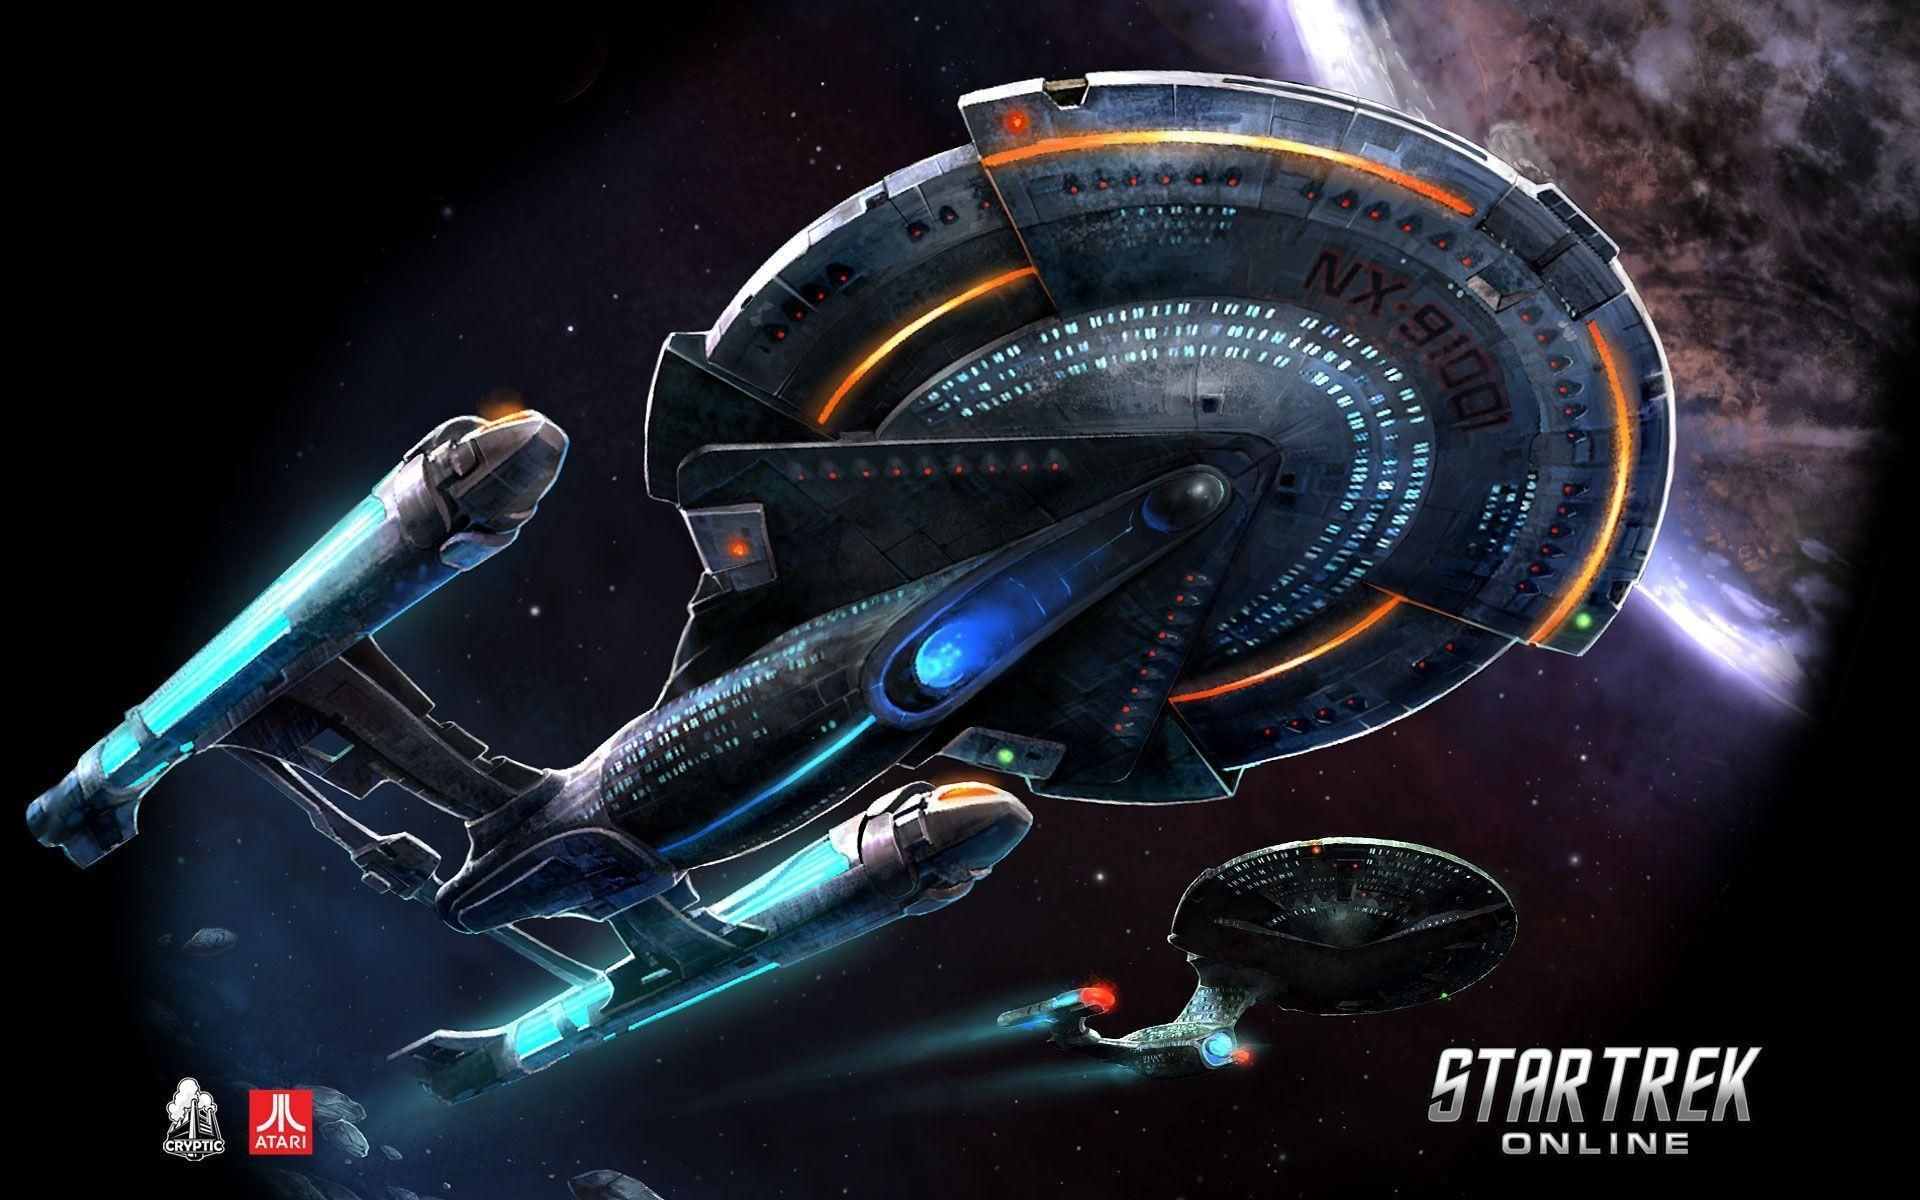 Most Downloaded Startrek Wallpapers Full Hd Wallpaper Search Star Trek Online Star Trek Ships Star Trek Starships